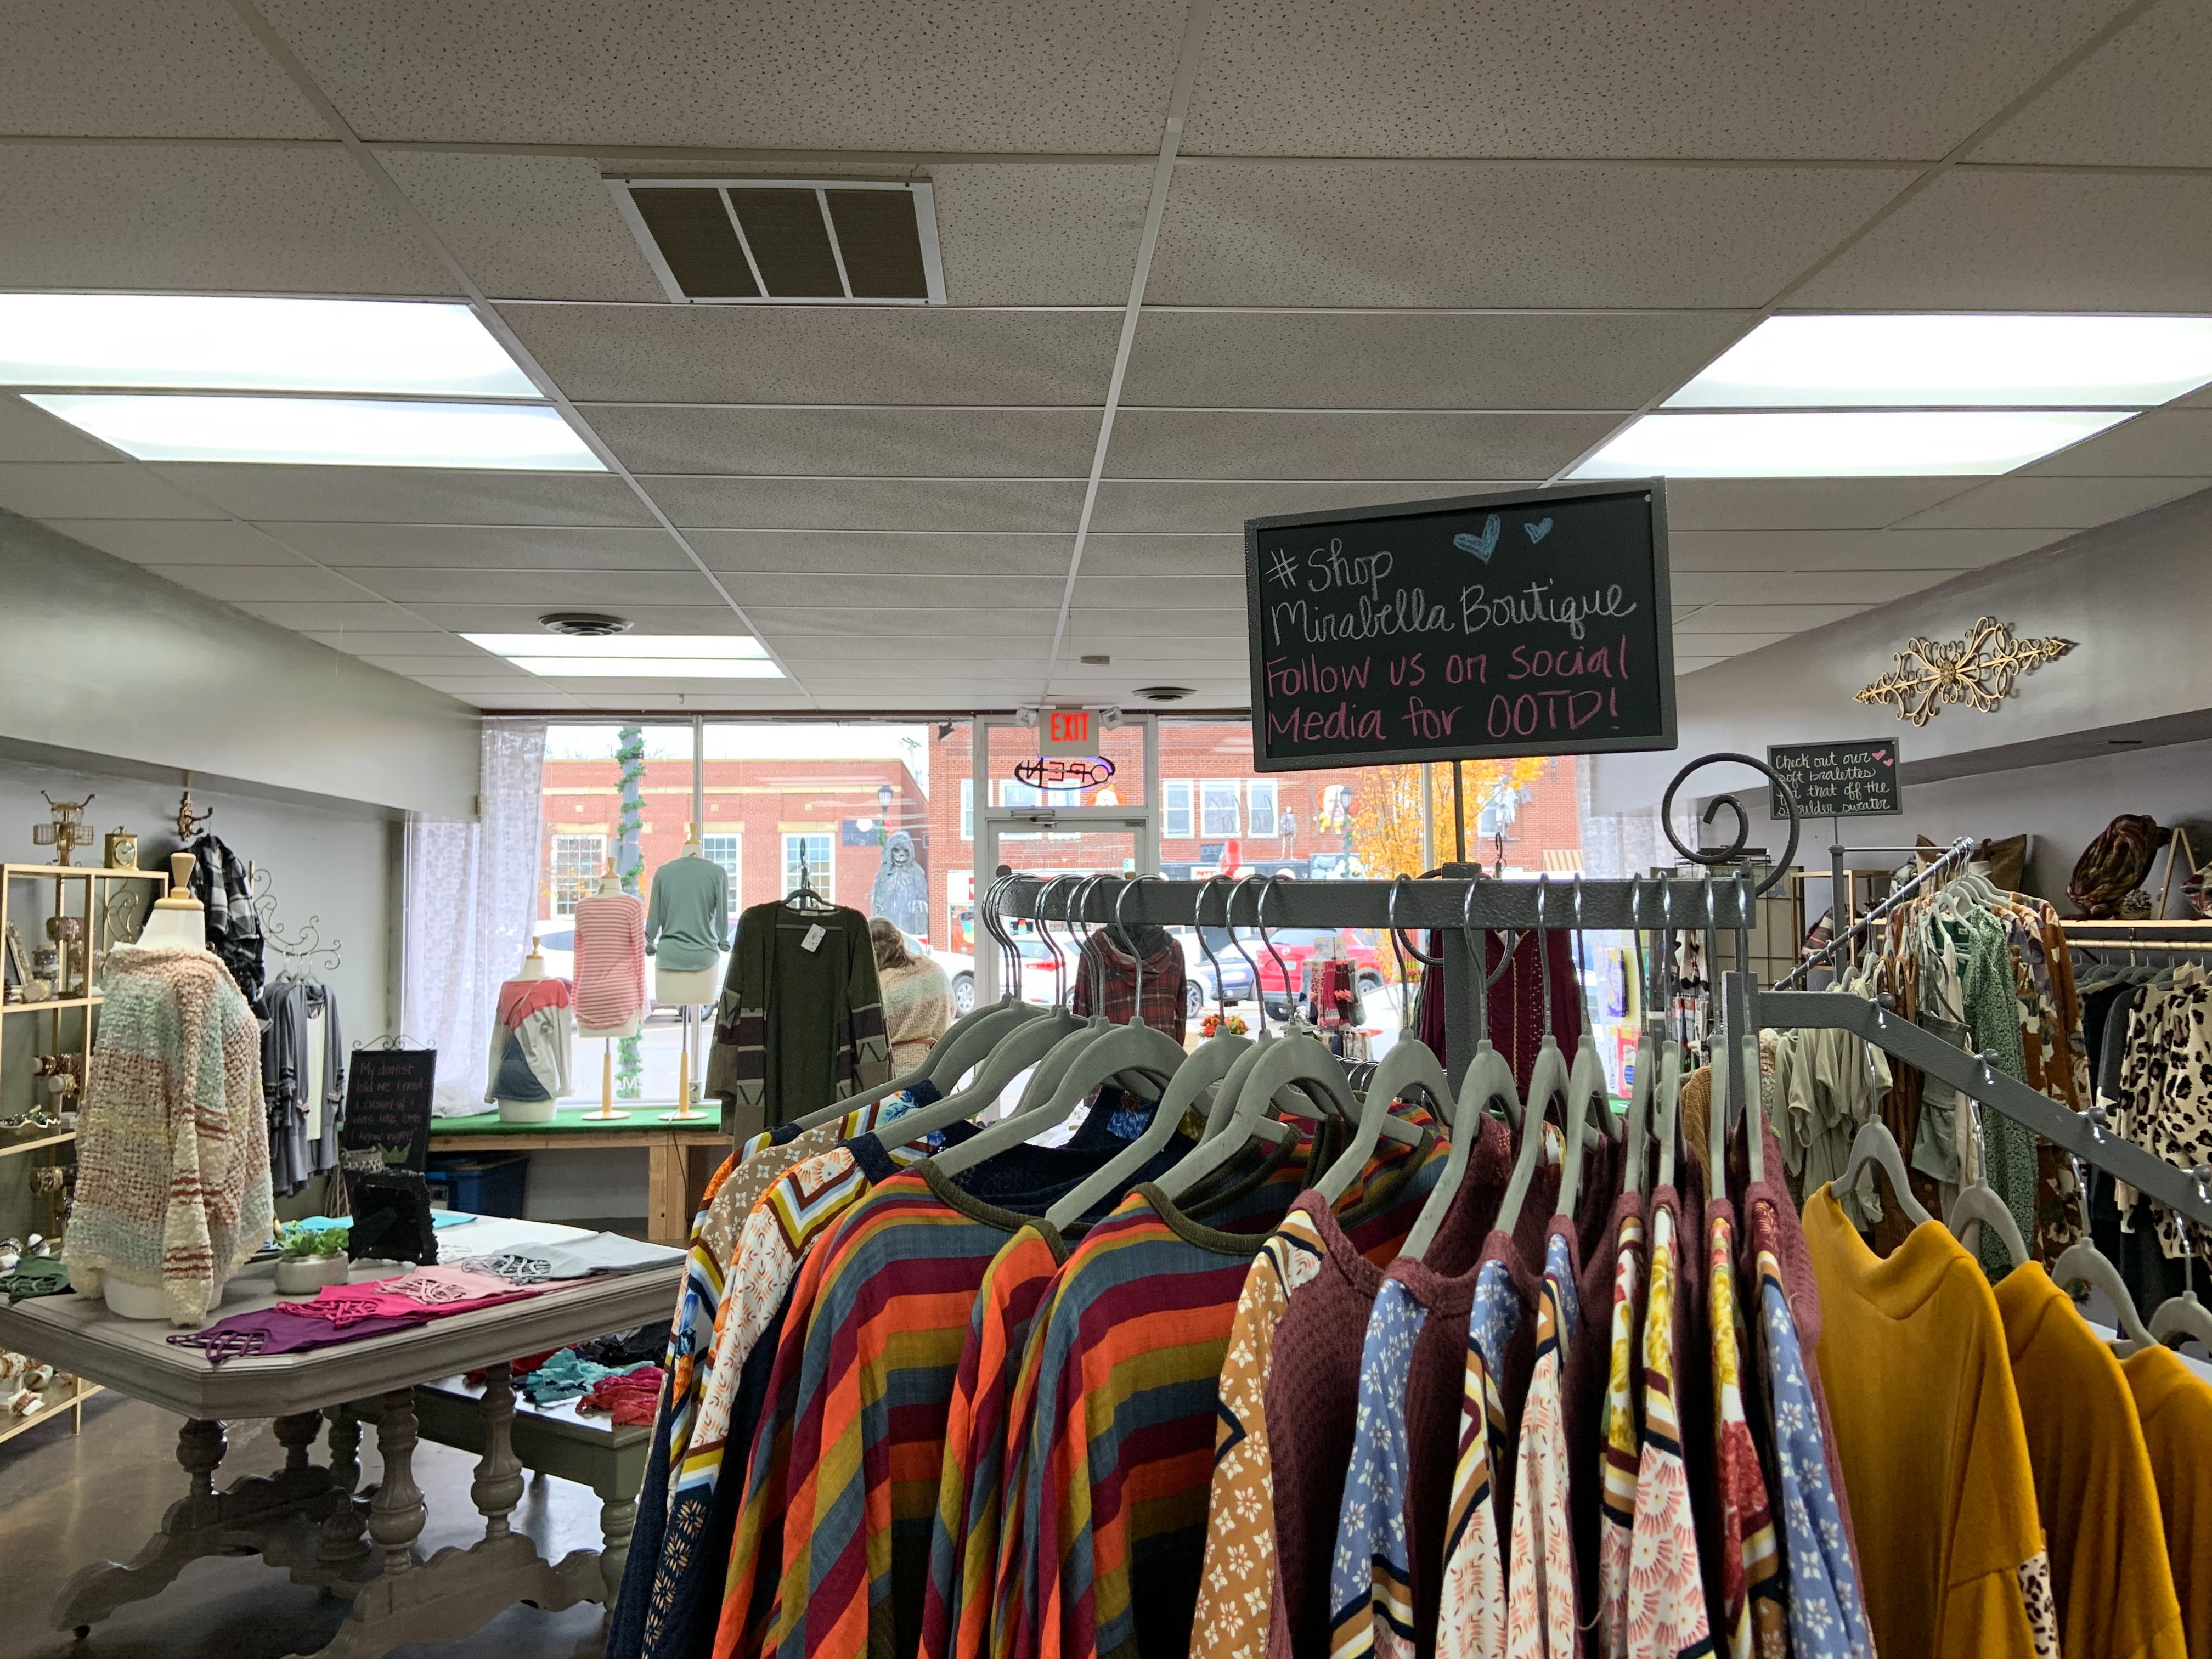 Mirabella Boutique | Photo by Natalie Cunningham | The Wright State Guardian